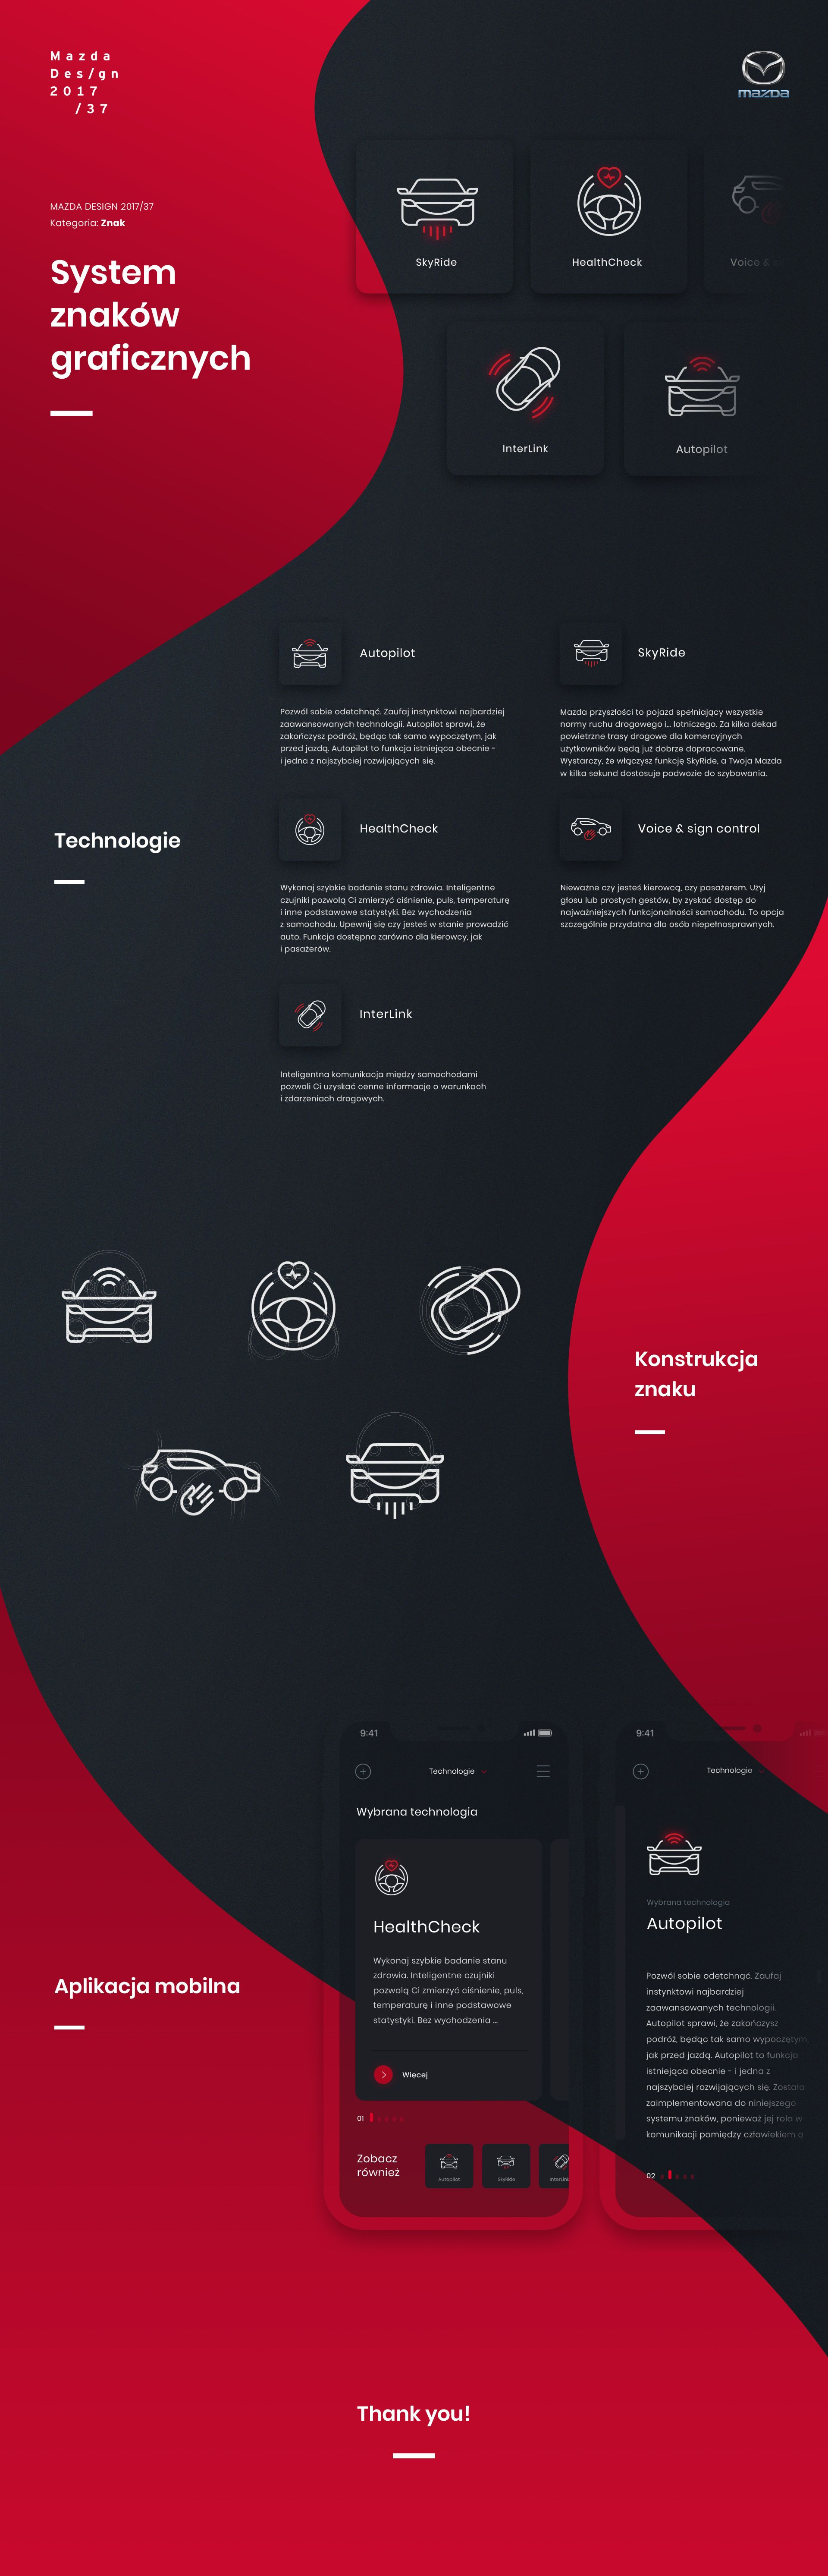 Year In Review 2017 By Saturized Web Design Inspiration Web Design Cool Designs